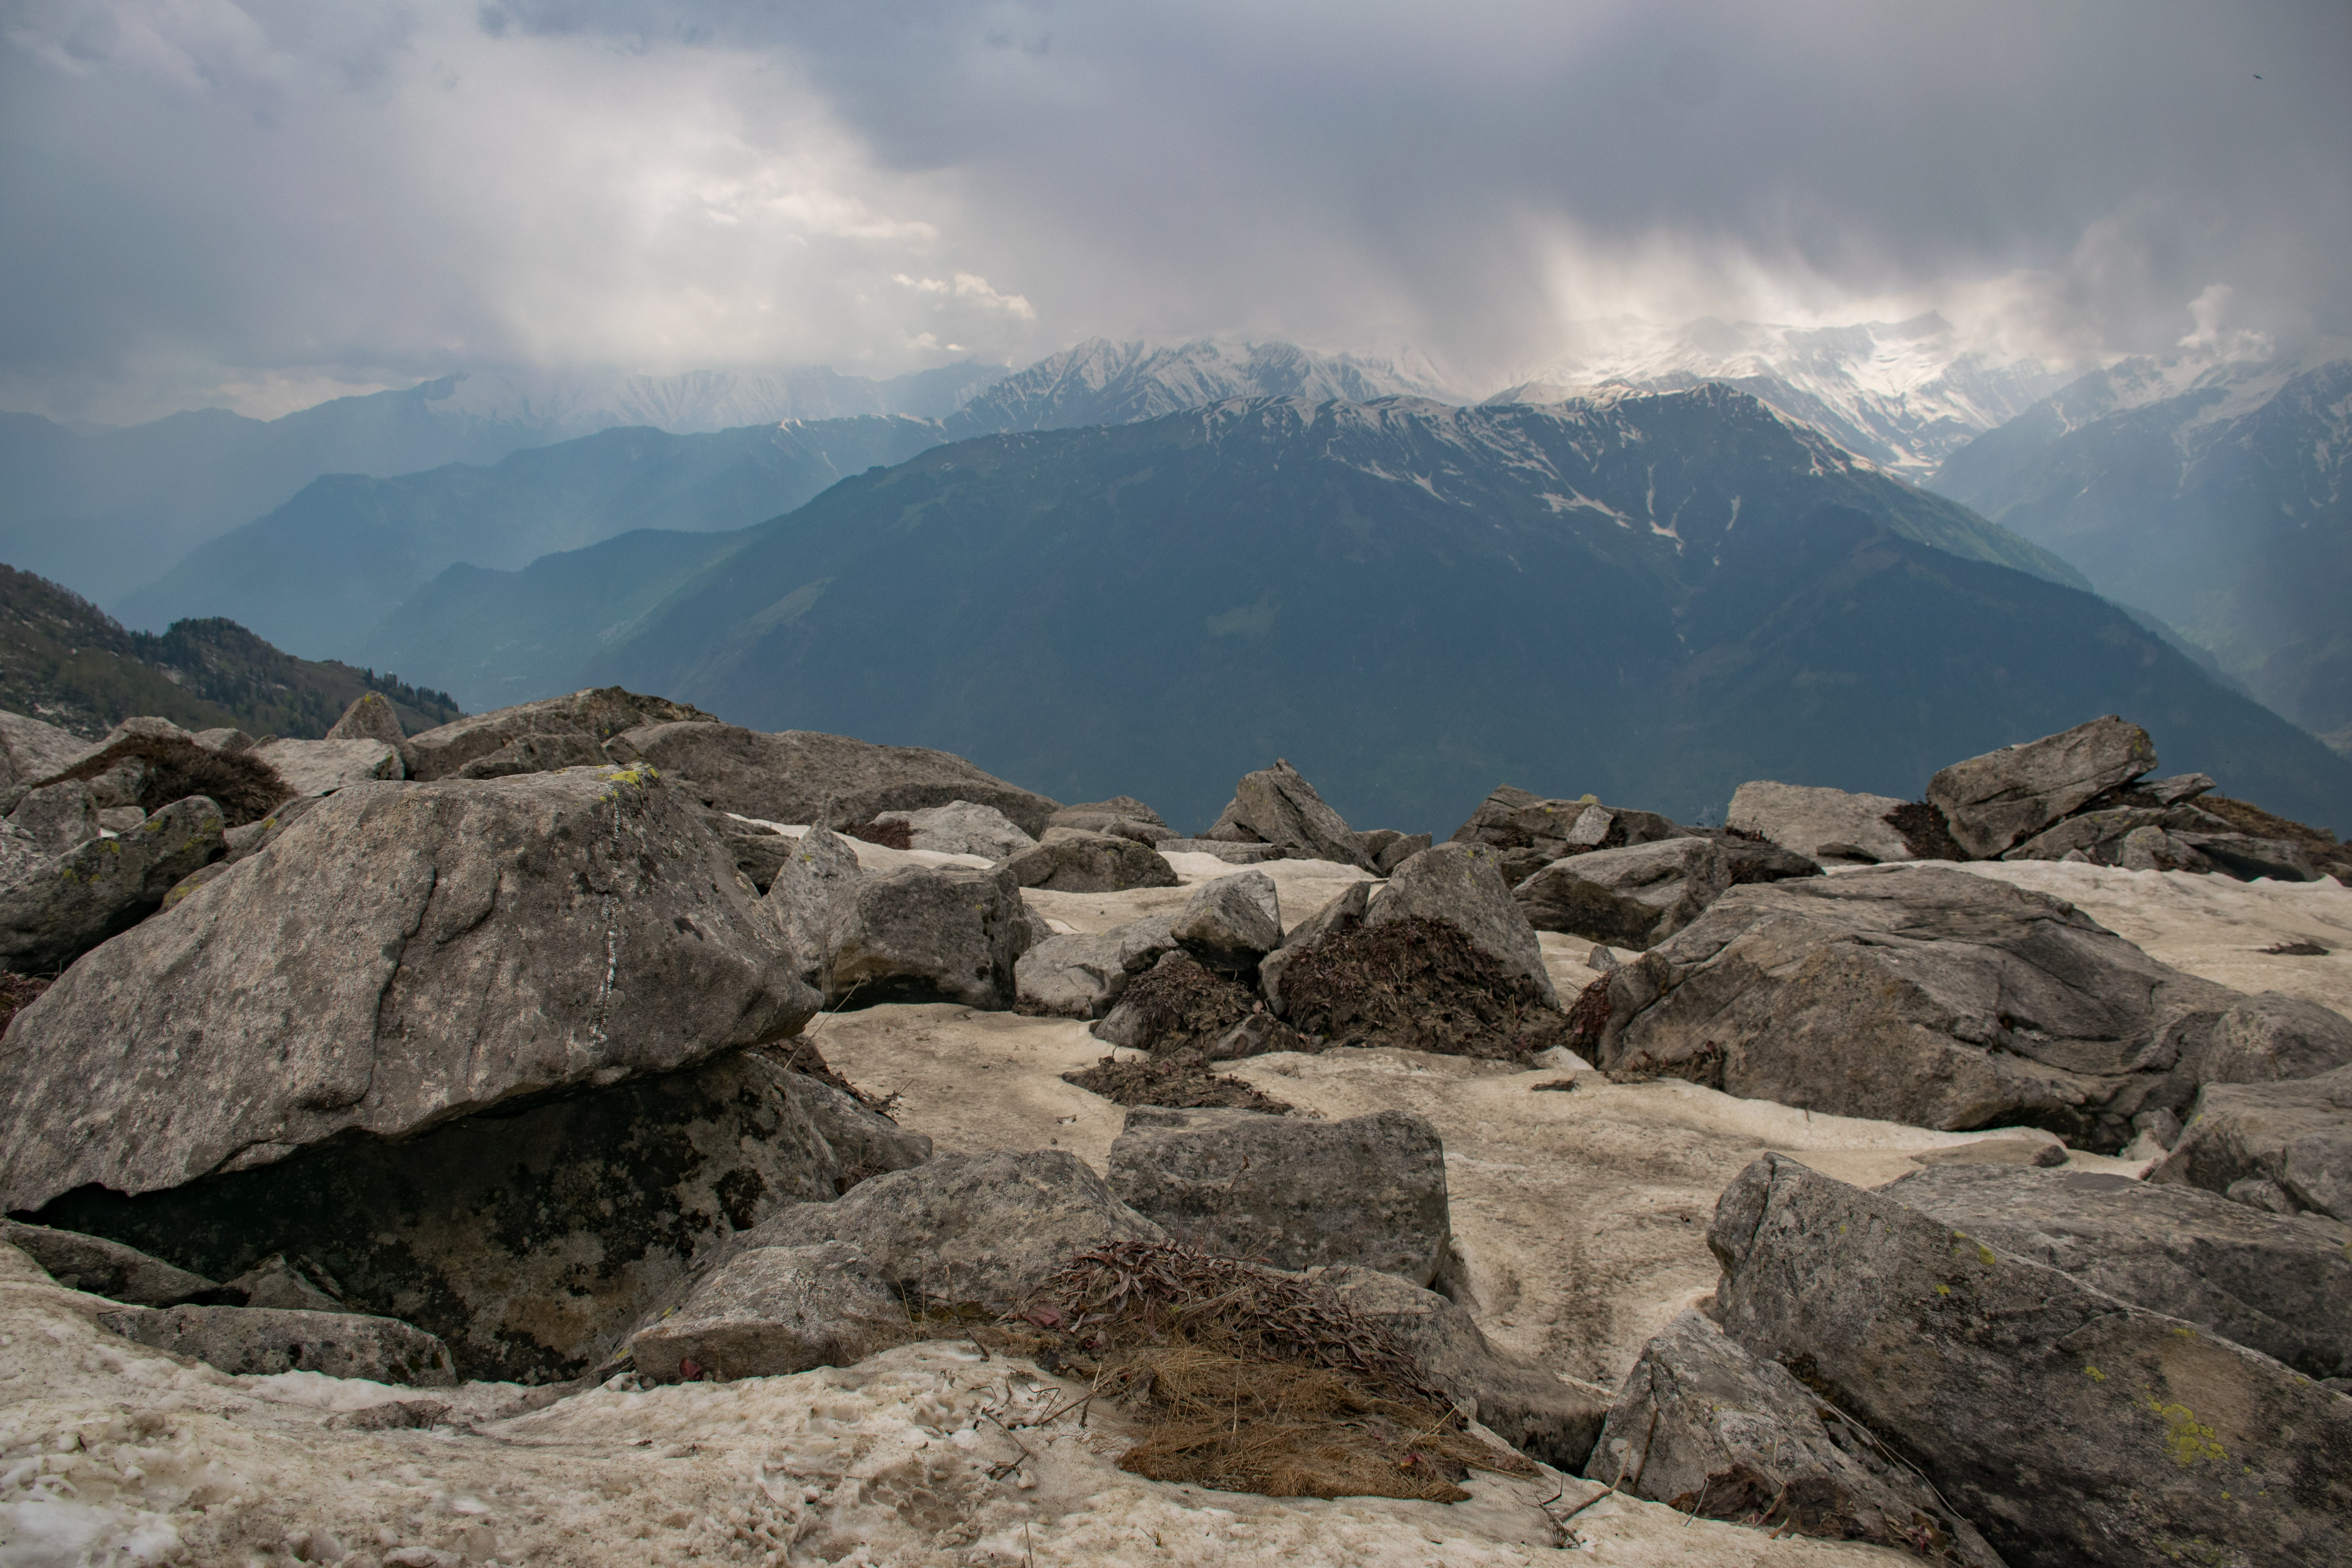 Gray Rocks in Front of Mountain, Clouds, Snow, Sky, Scenic, HQ Photo